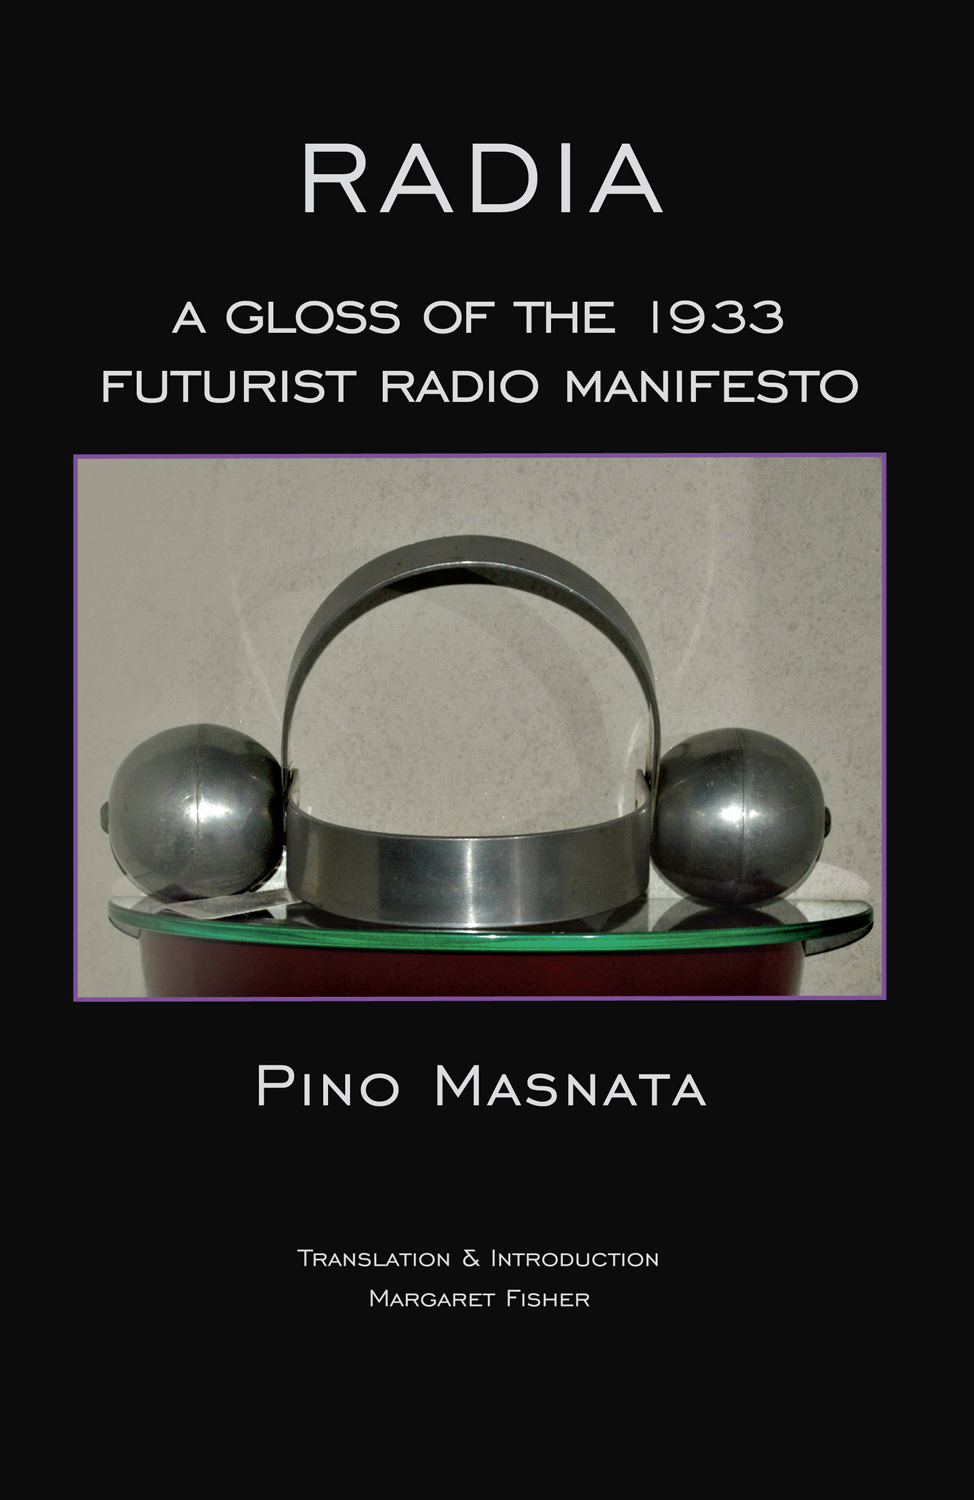 RADIA Pino Masnata Gloss of the 1933 Futurist Radio Manifesto